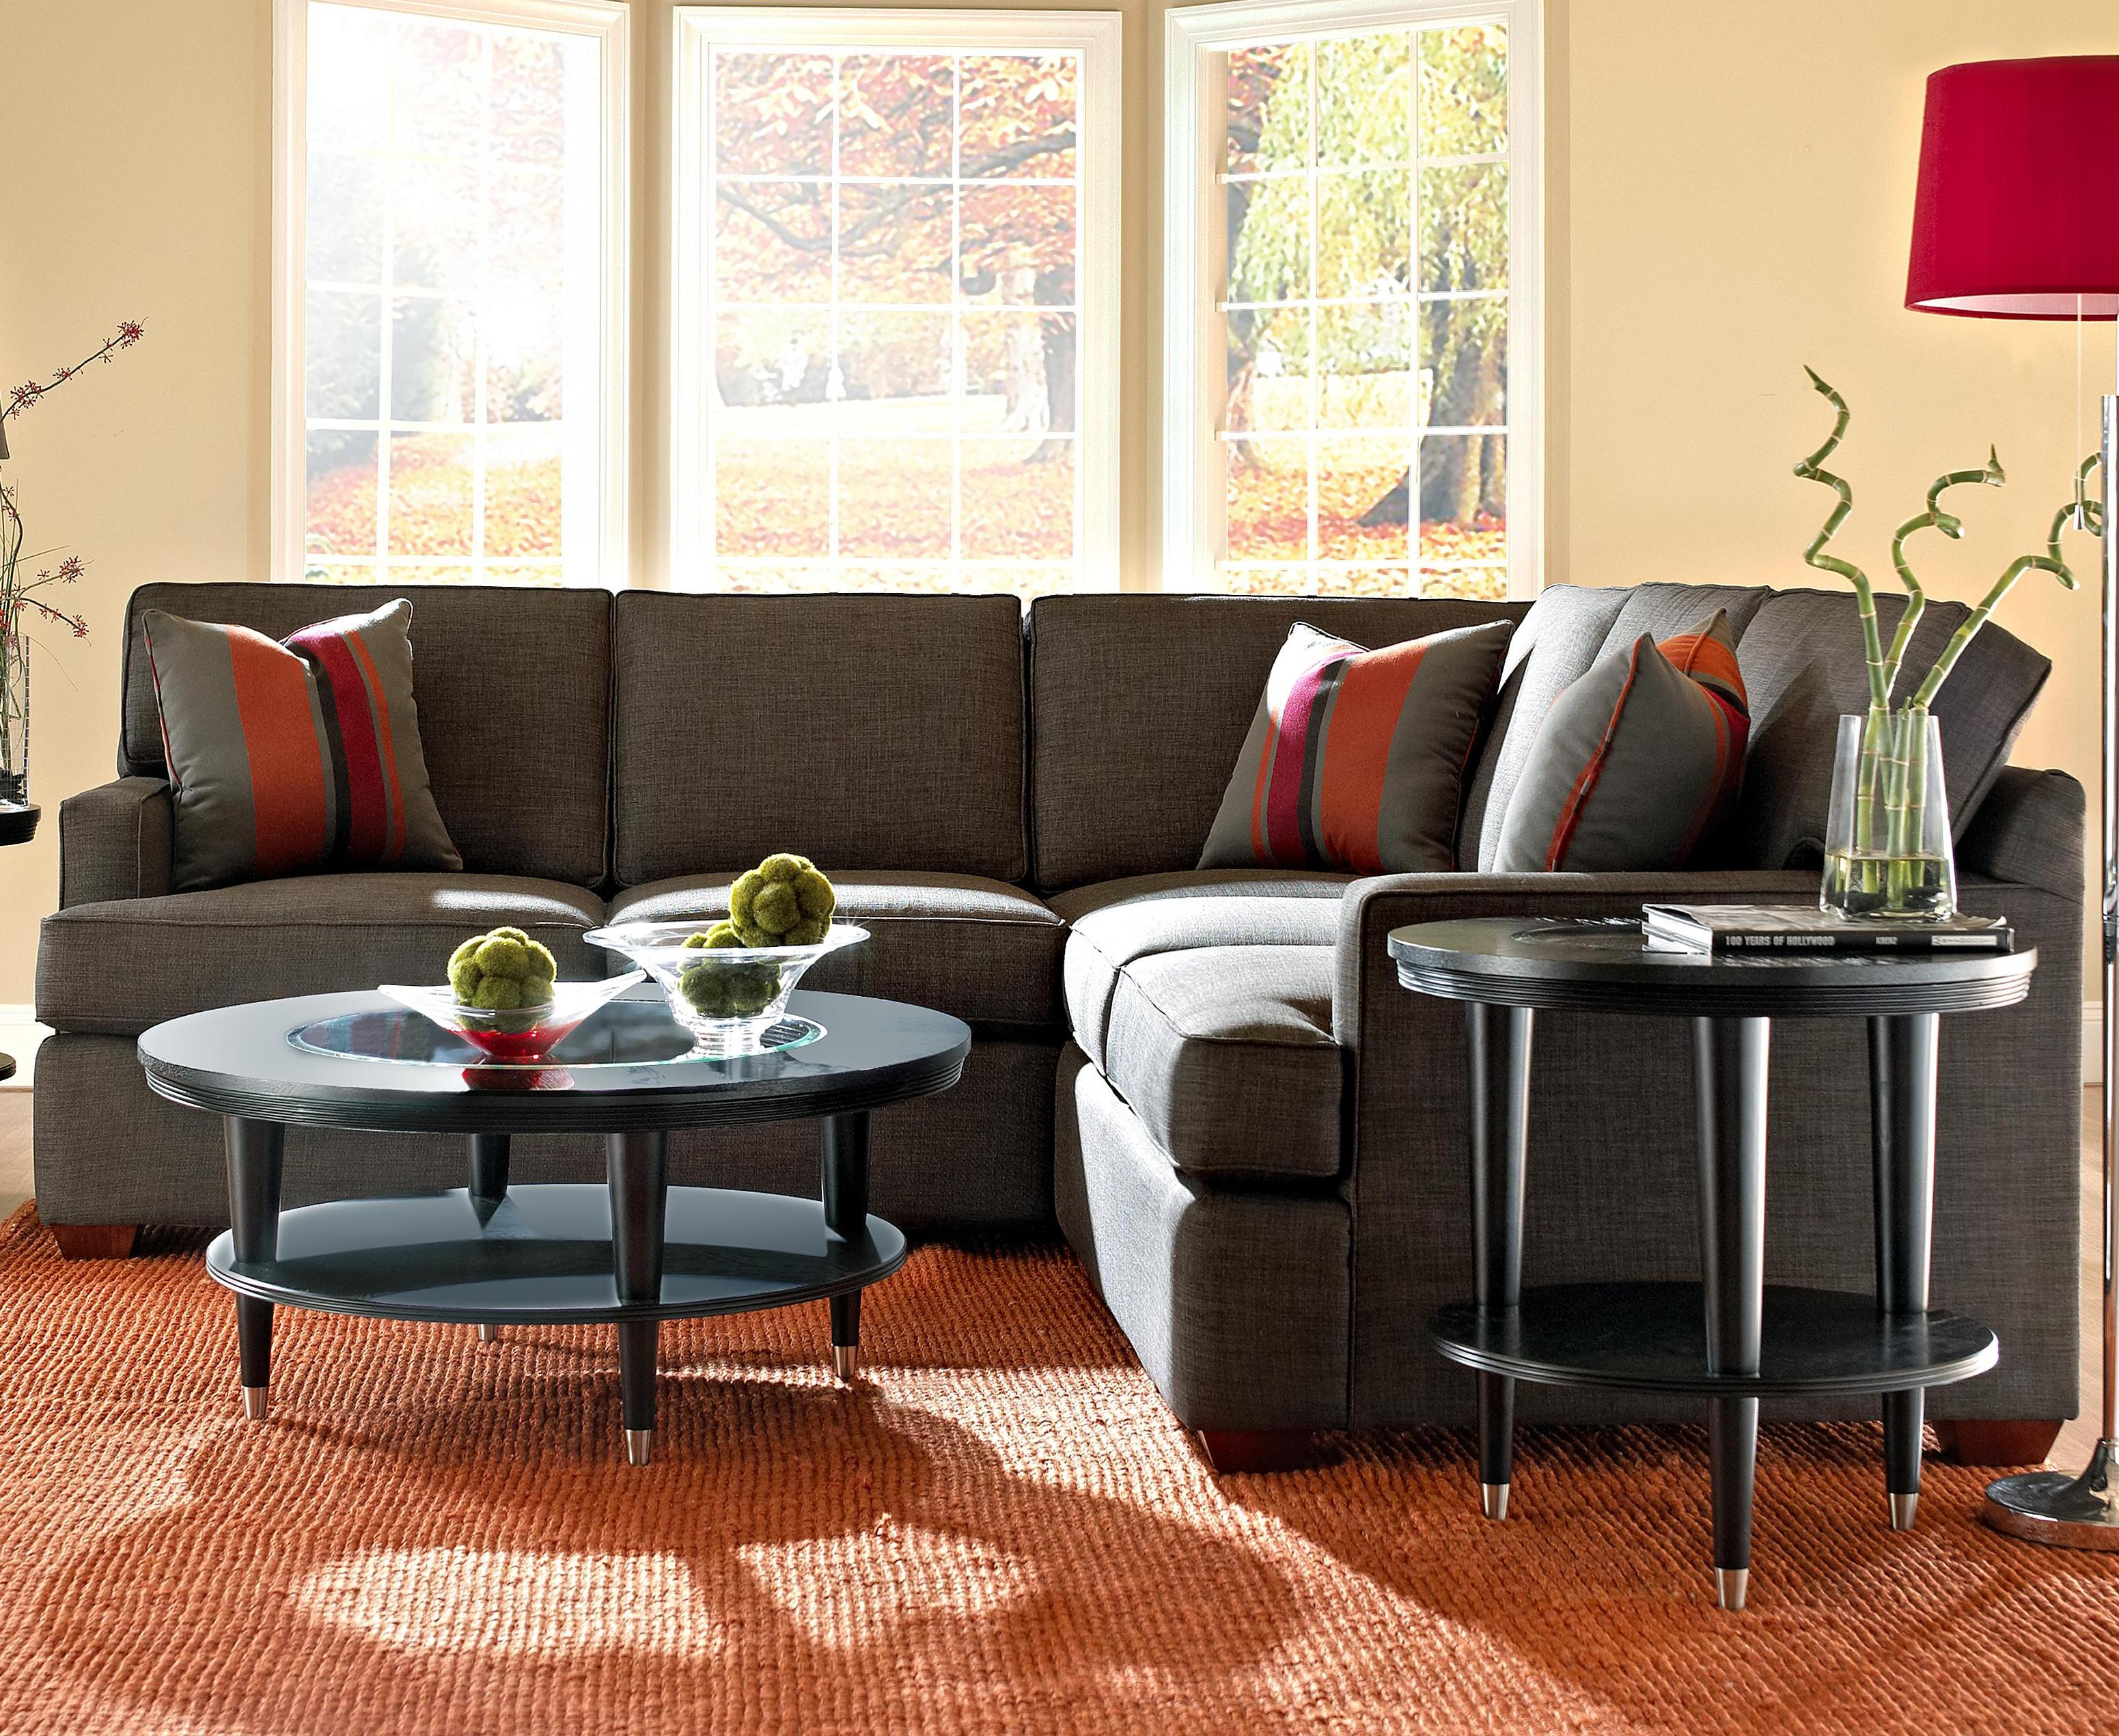 2 Piece Sectional Sofa Group by Klaussner